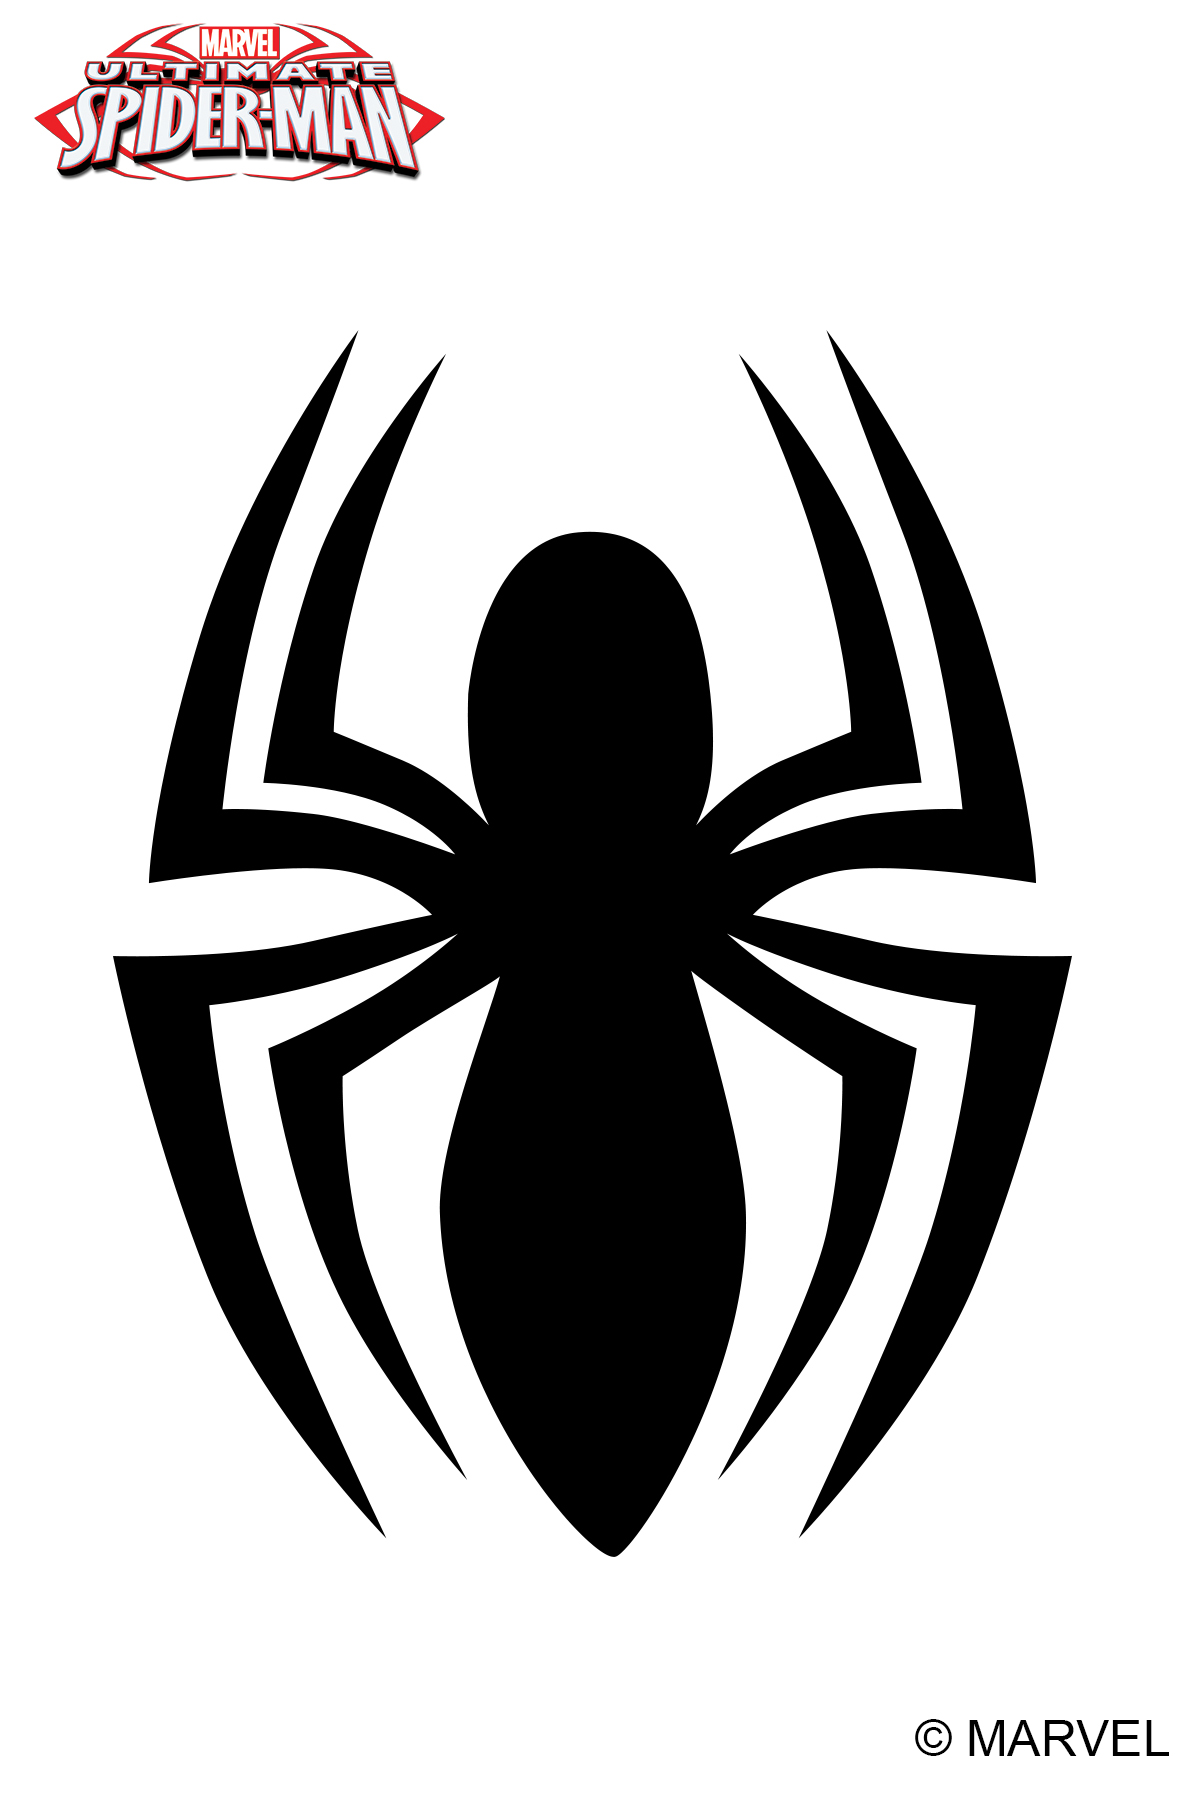 Spiderman clipart arachnid Ultimate Spider MARVEL #spiderman Spider